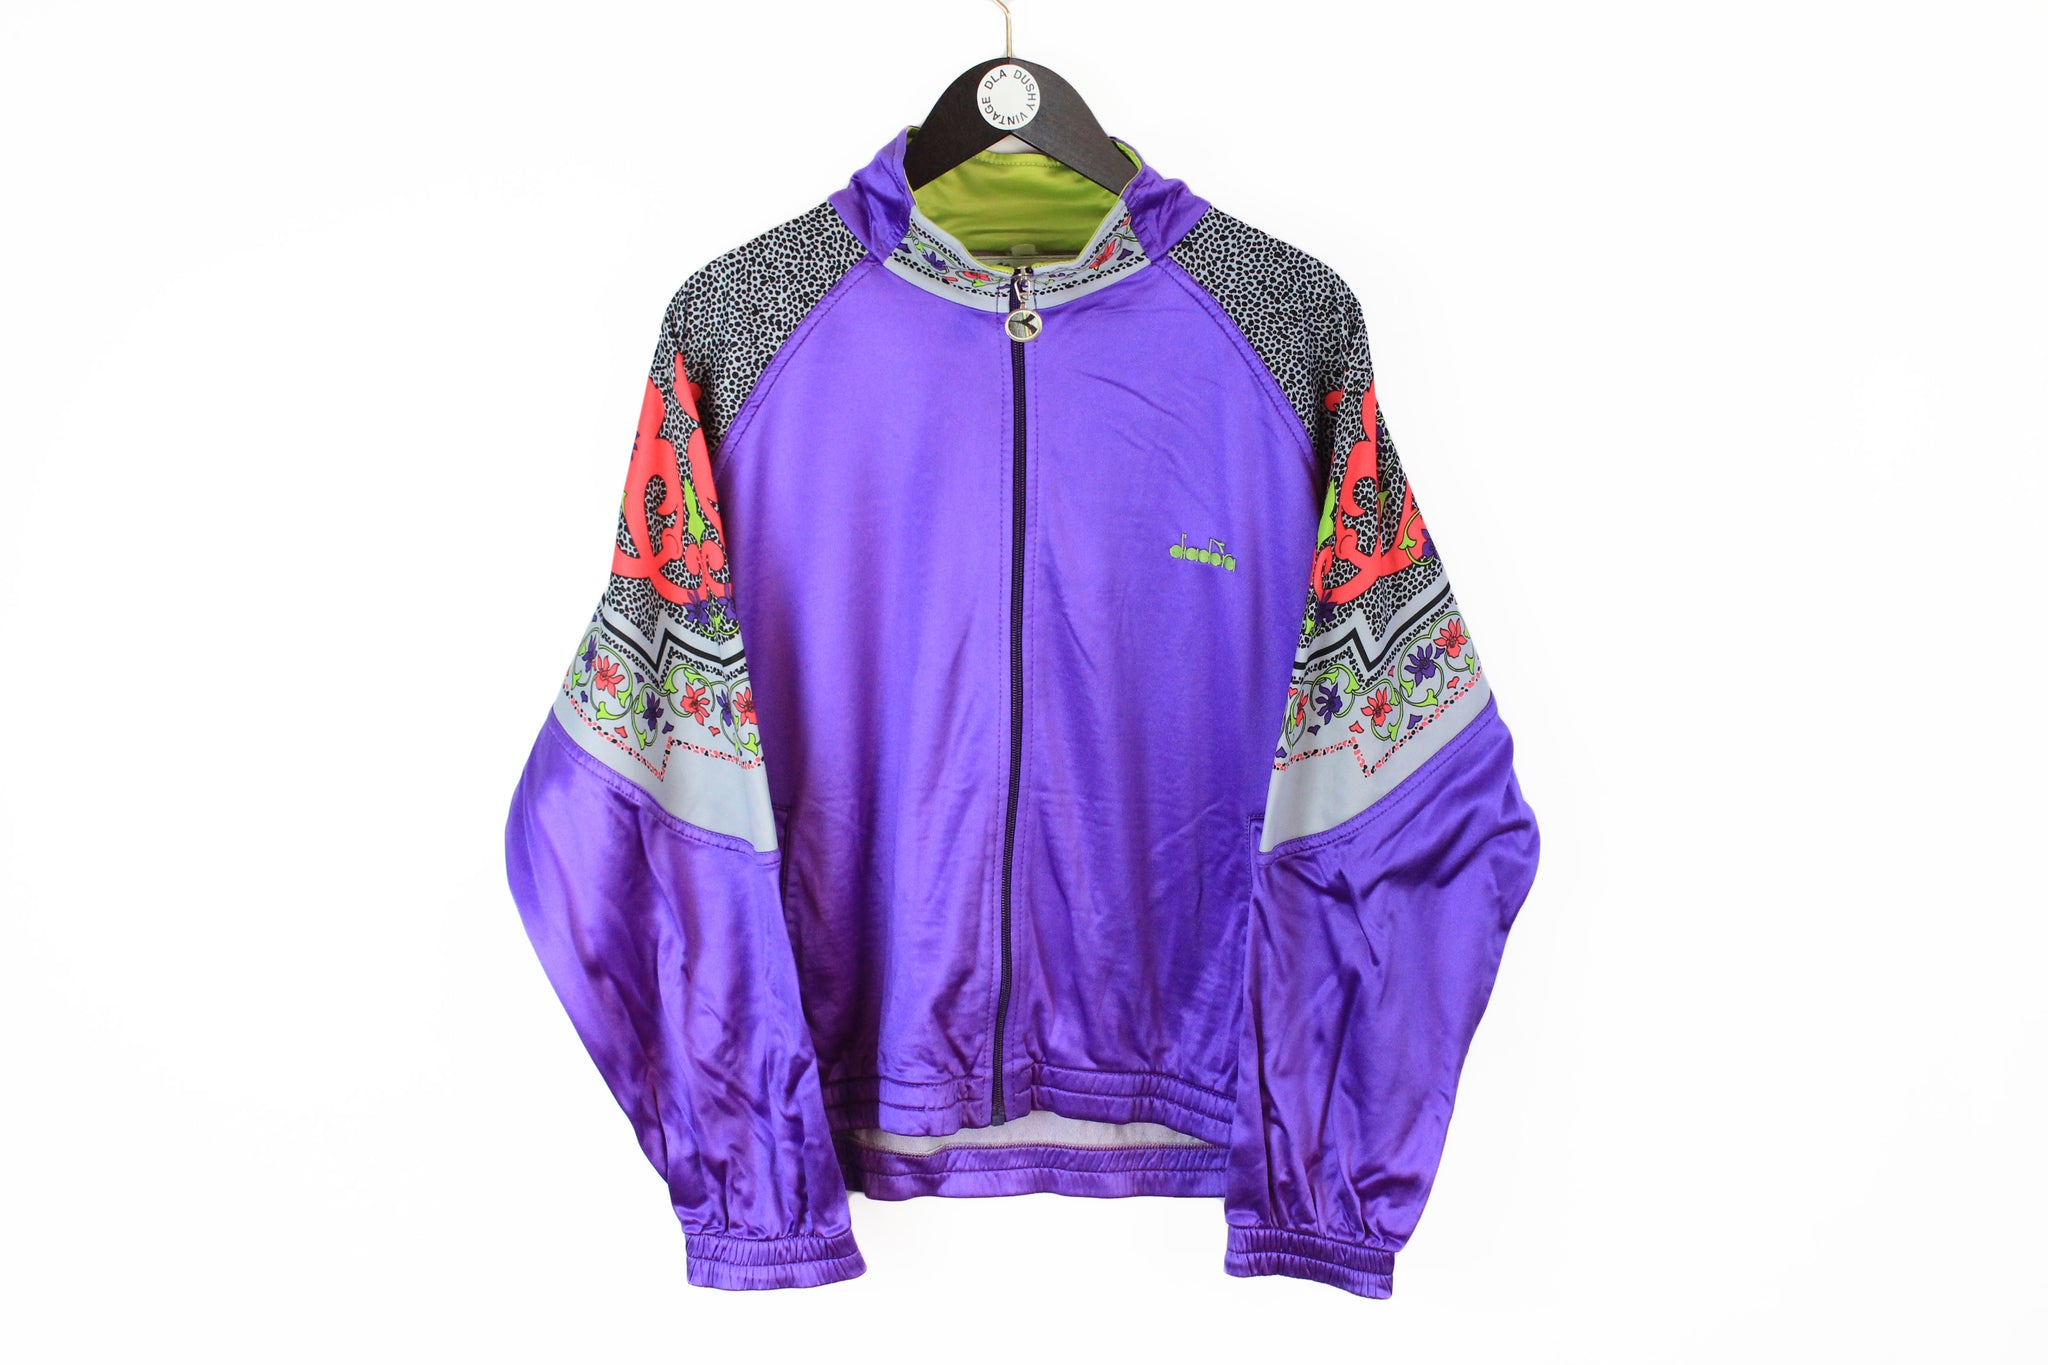 Vintage Diadora Track Jacket Medium purple multicolor 90s sport full zip windbreaker